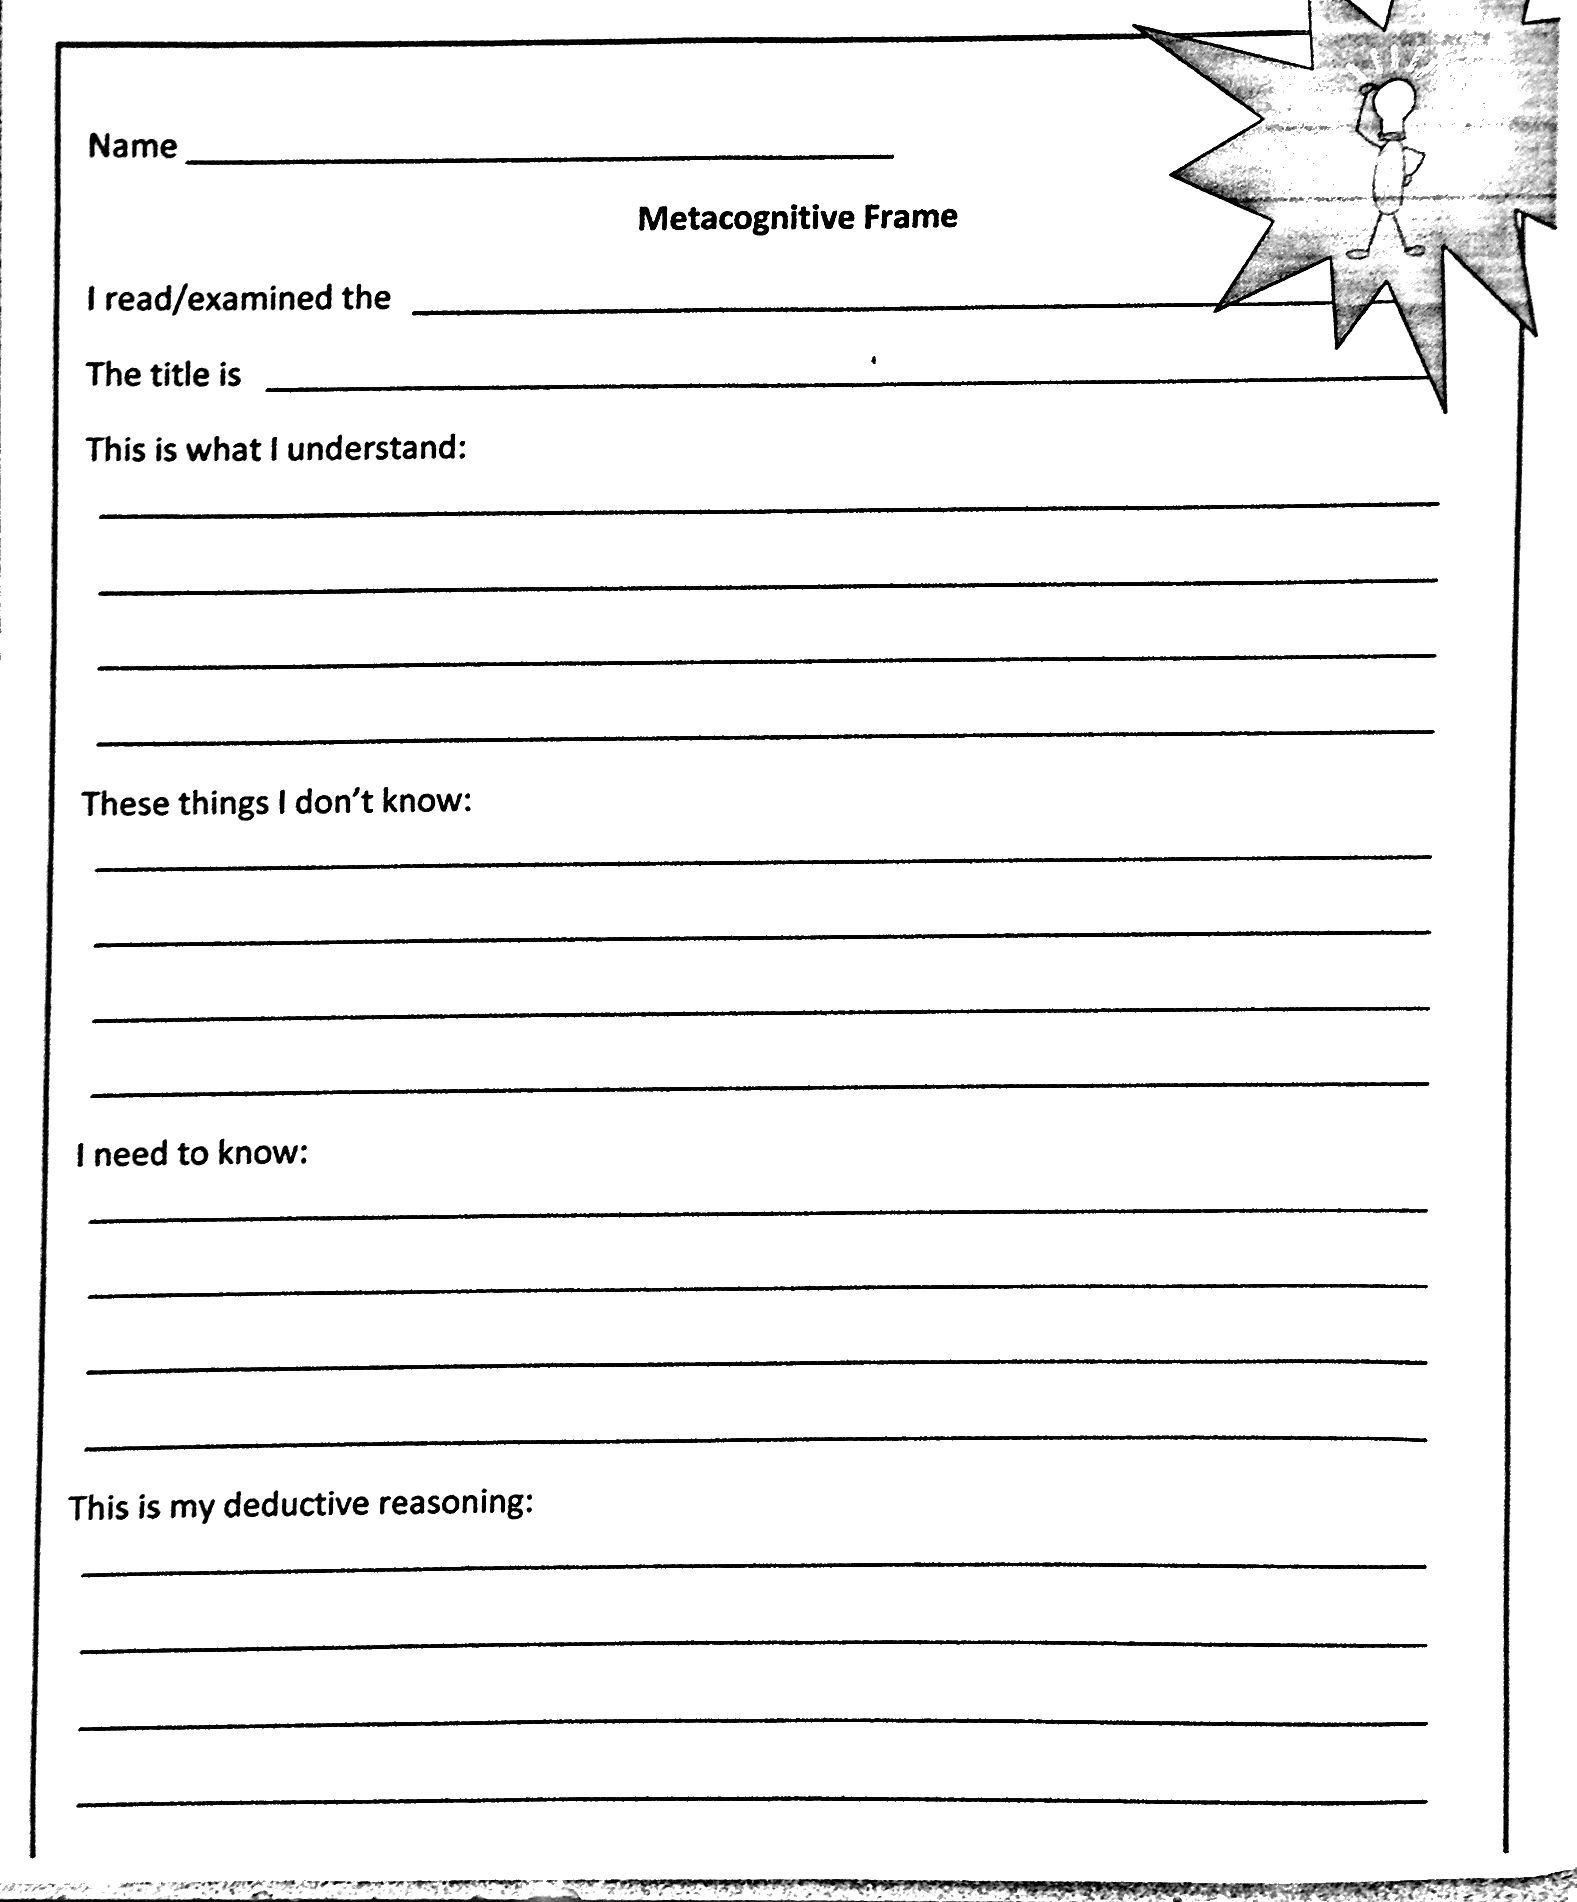 Social Studies Worksheets 7th Grade social Stu S Skills